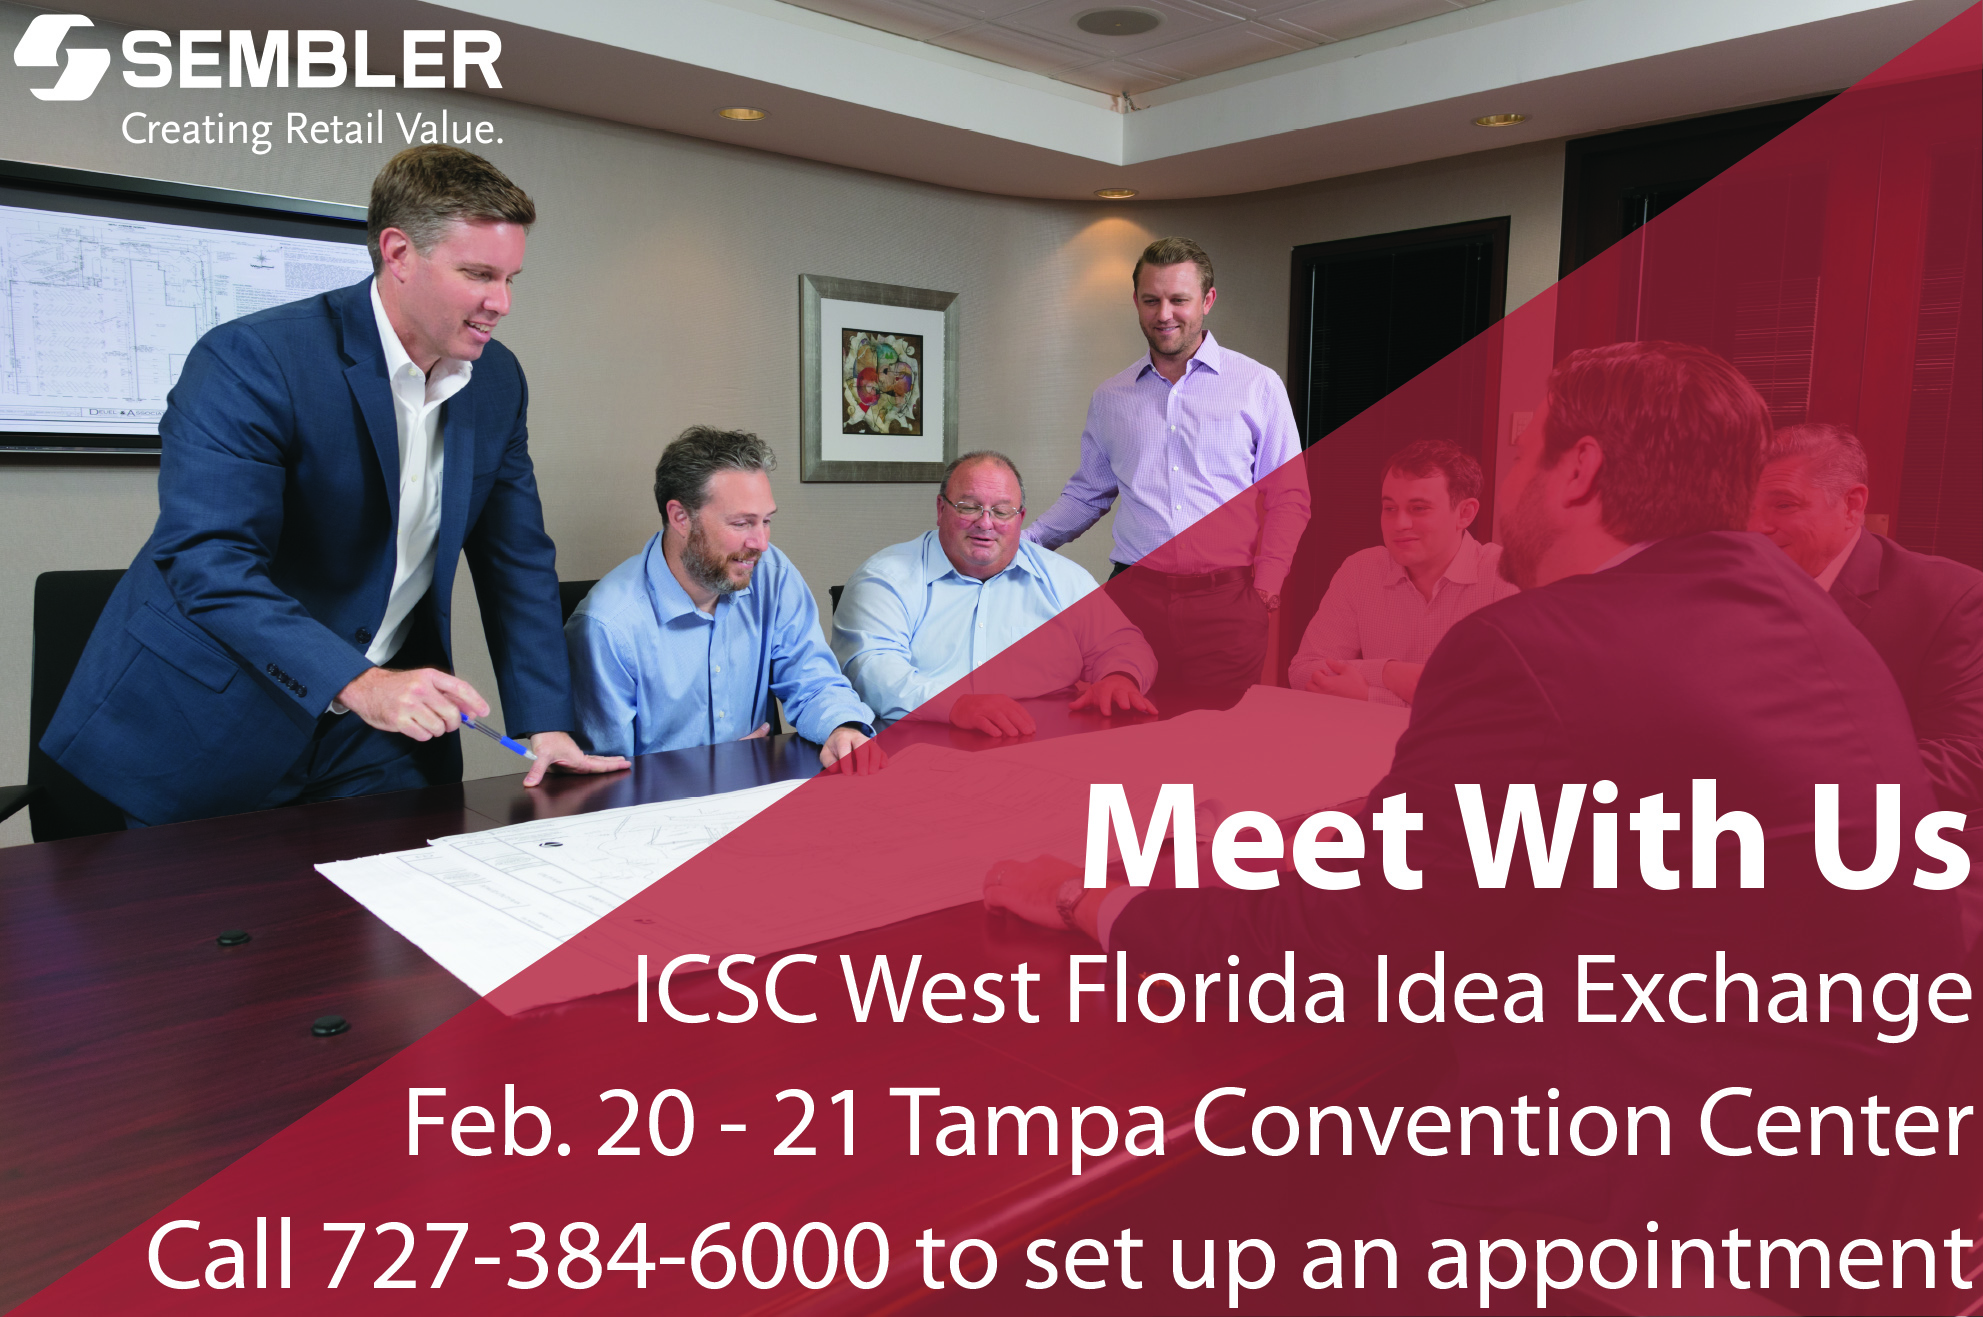 ICSC West Florida Idea Exchange